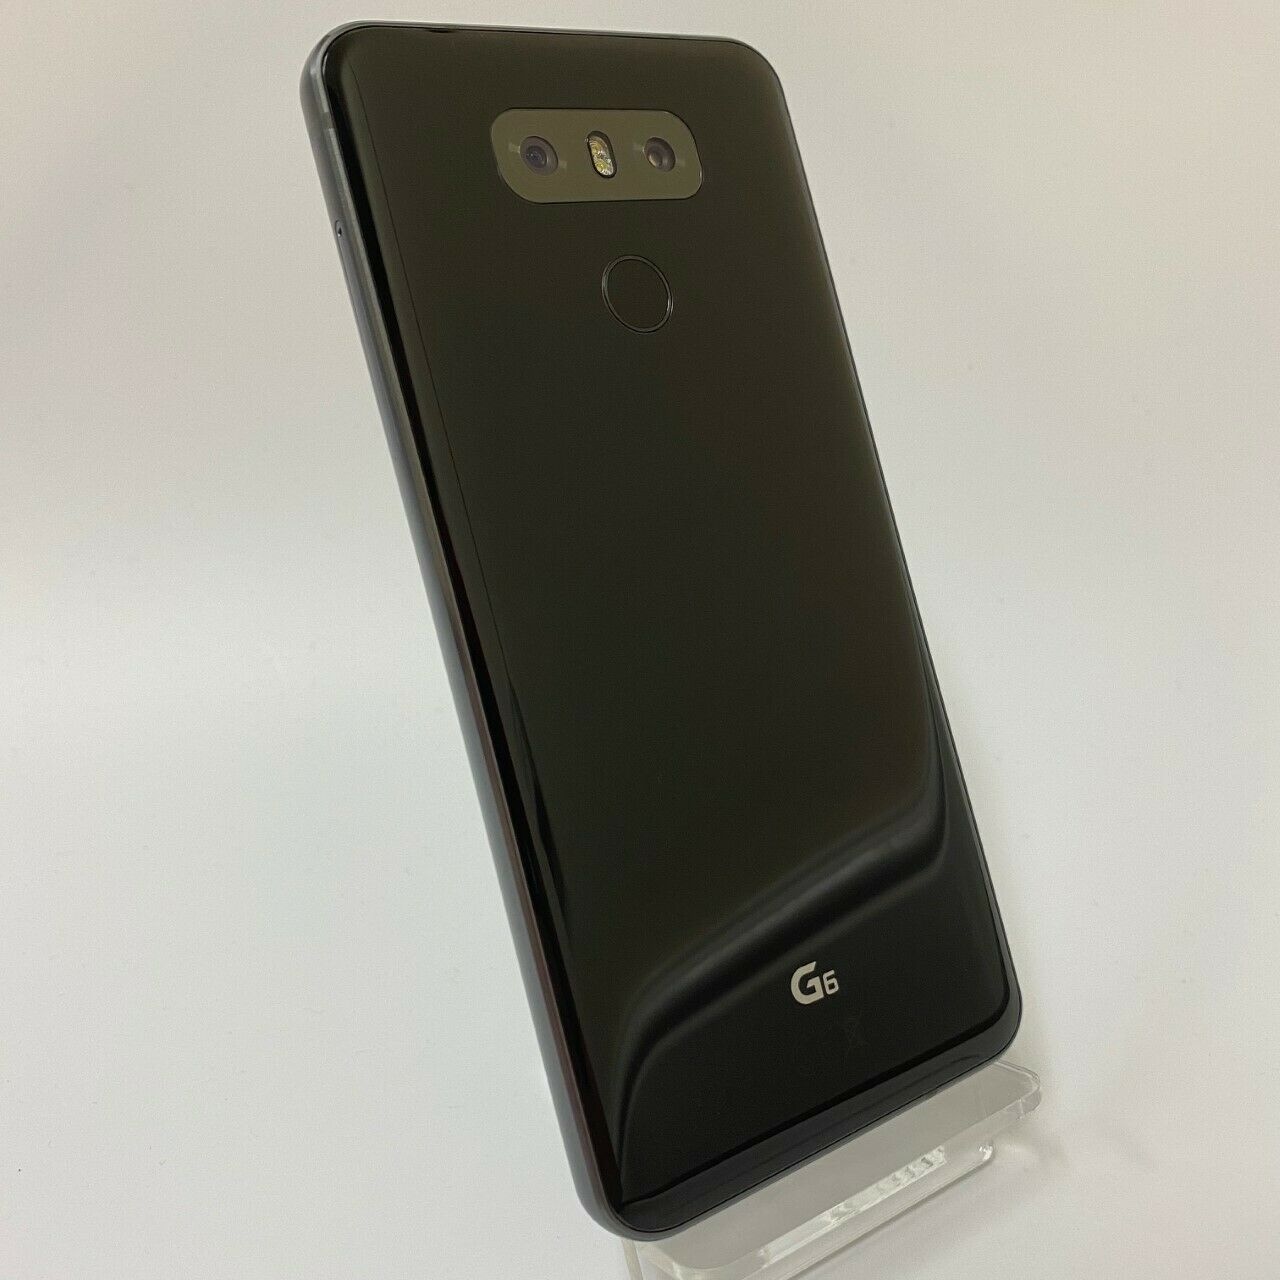 Android Phone - LG G6 H870 32GB - BLACK  - UNLOCKED - Smartphone Mobile Phone Android